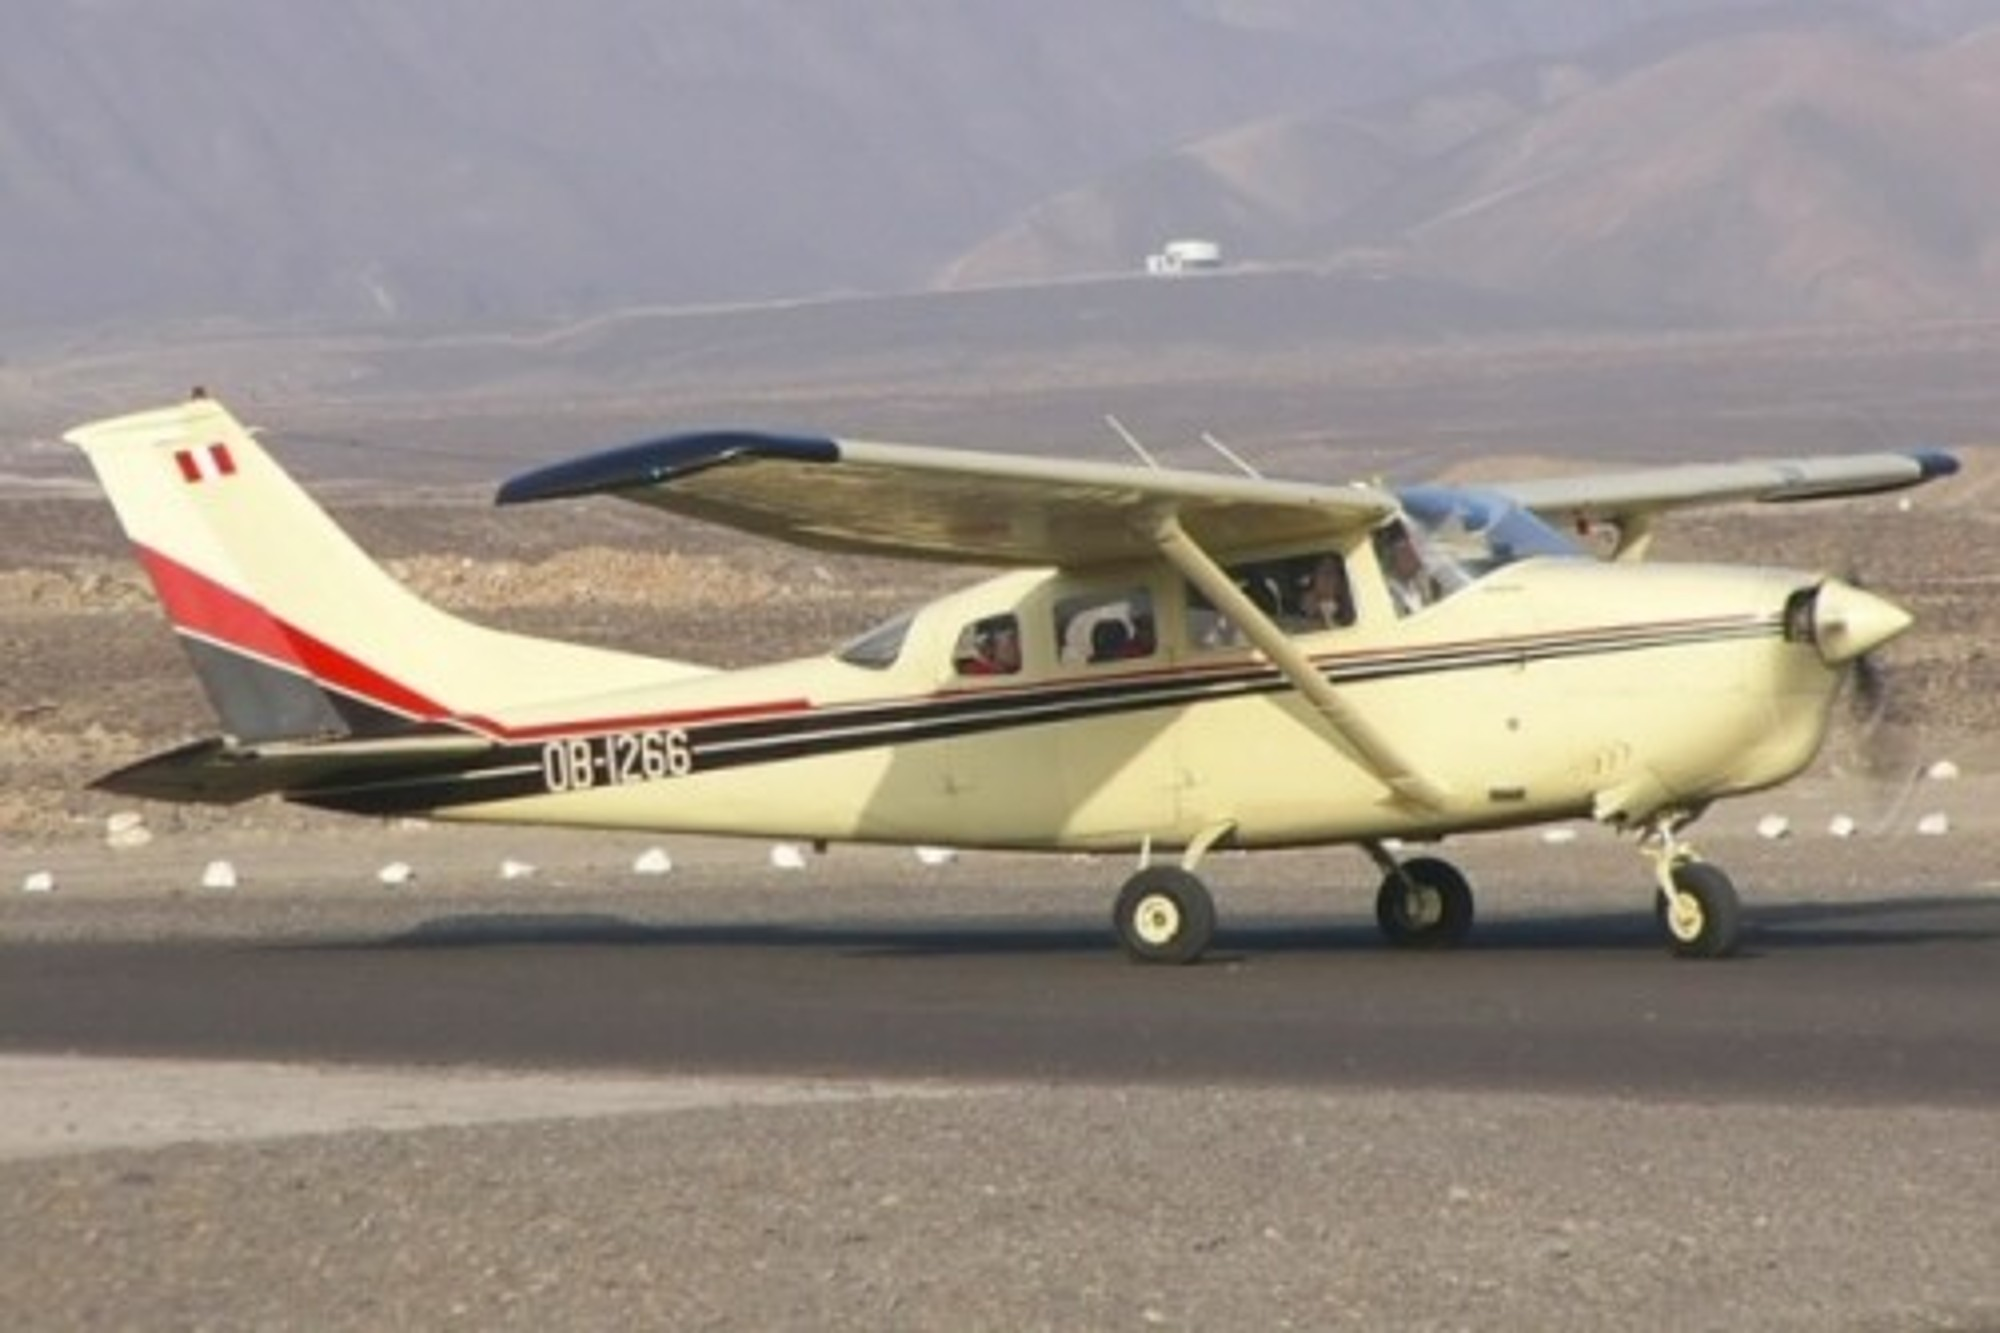 United states : fatal collision between two aircraft with 8 persons on board